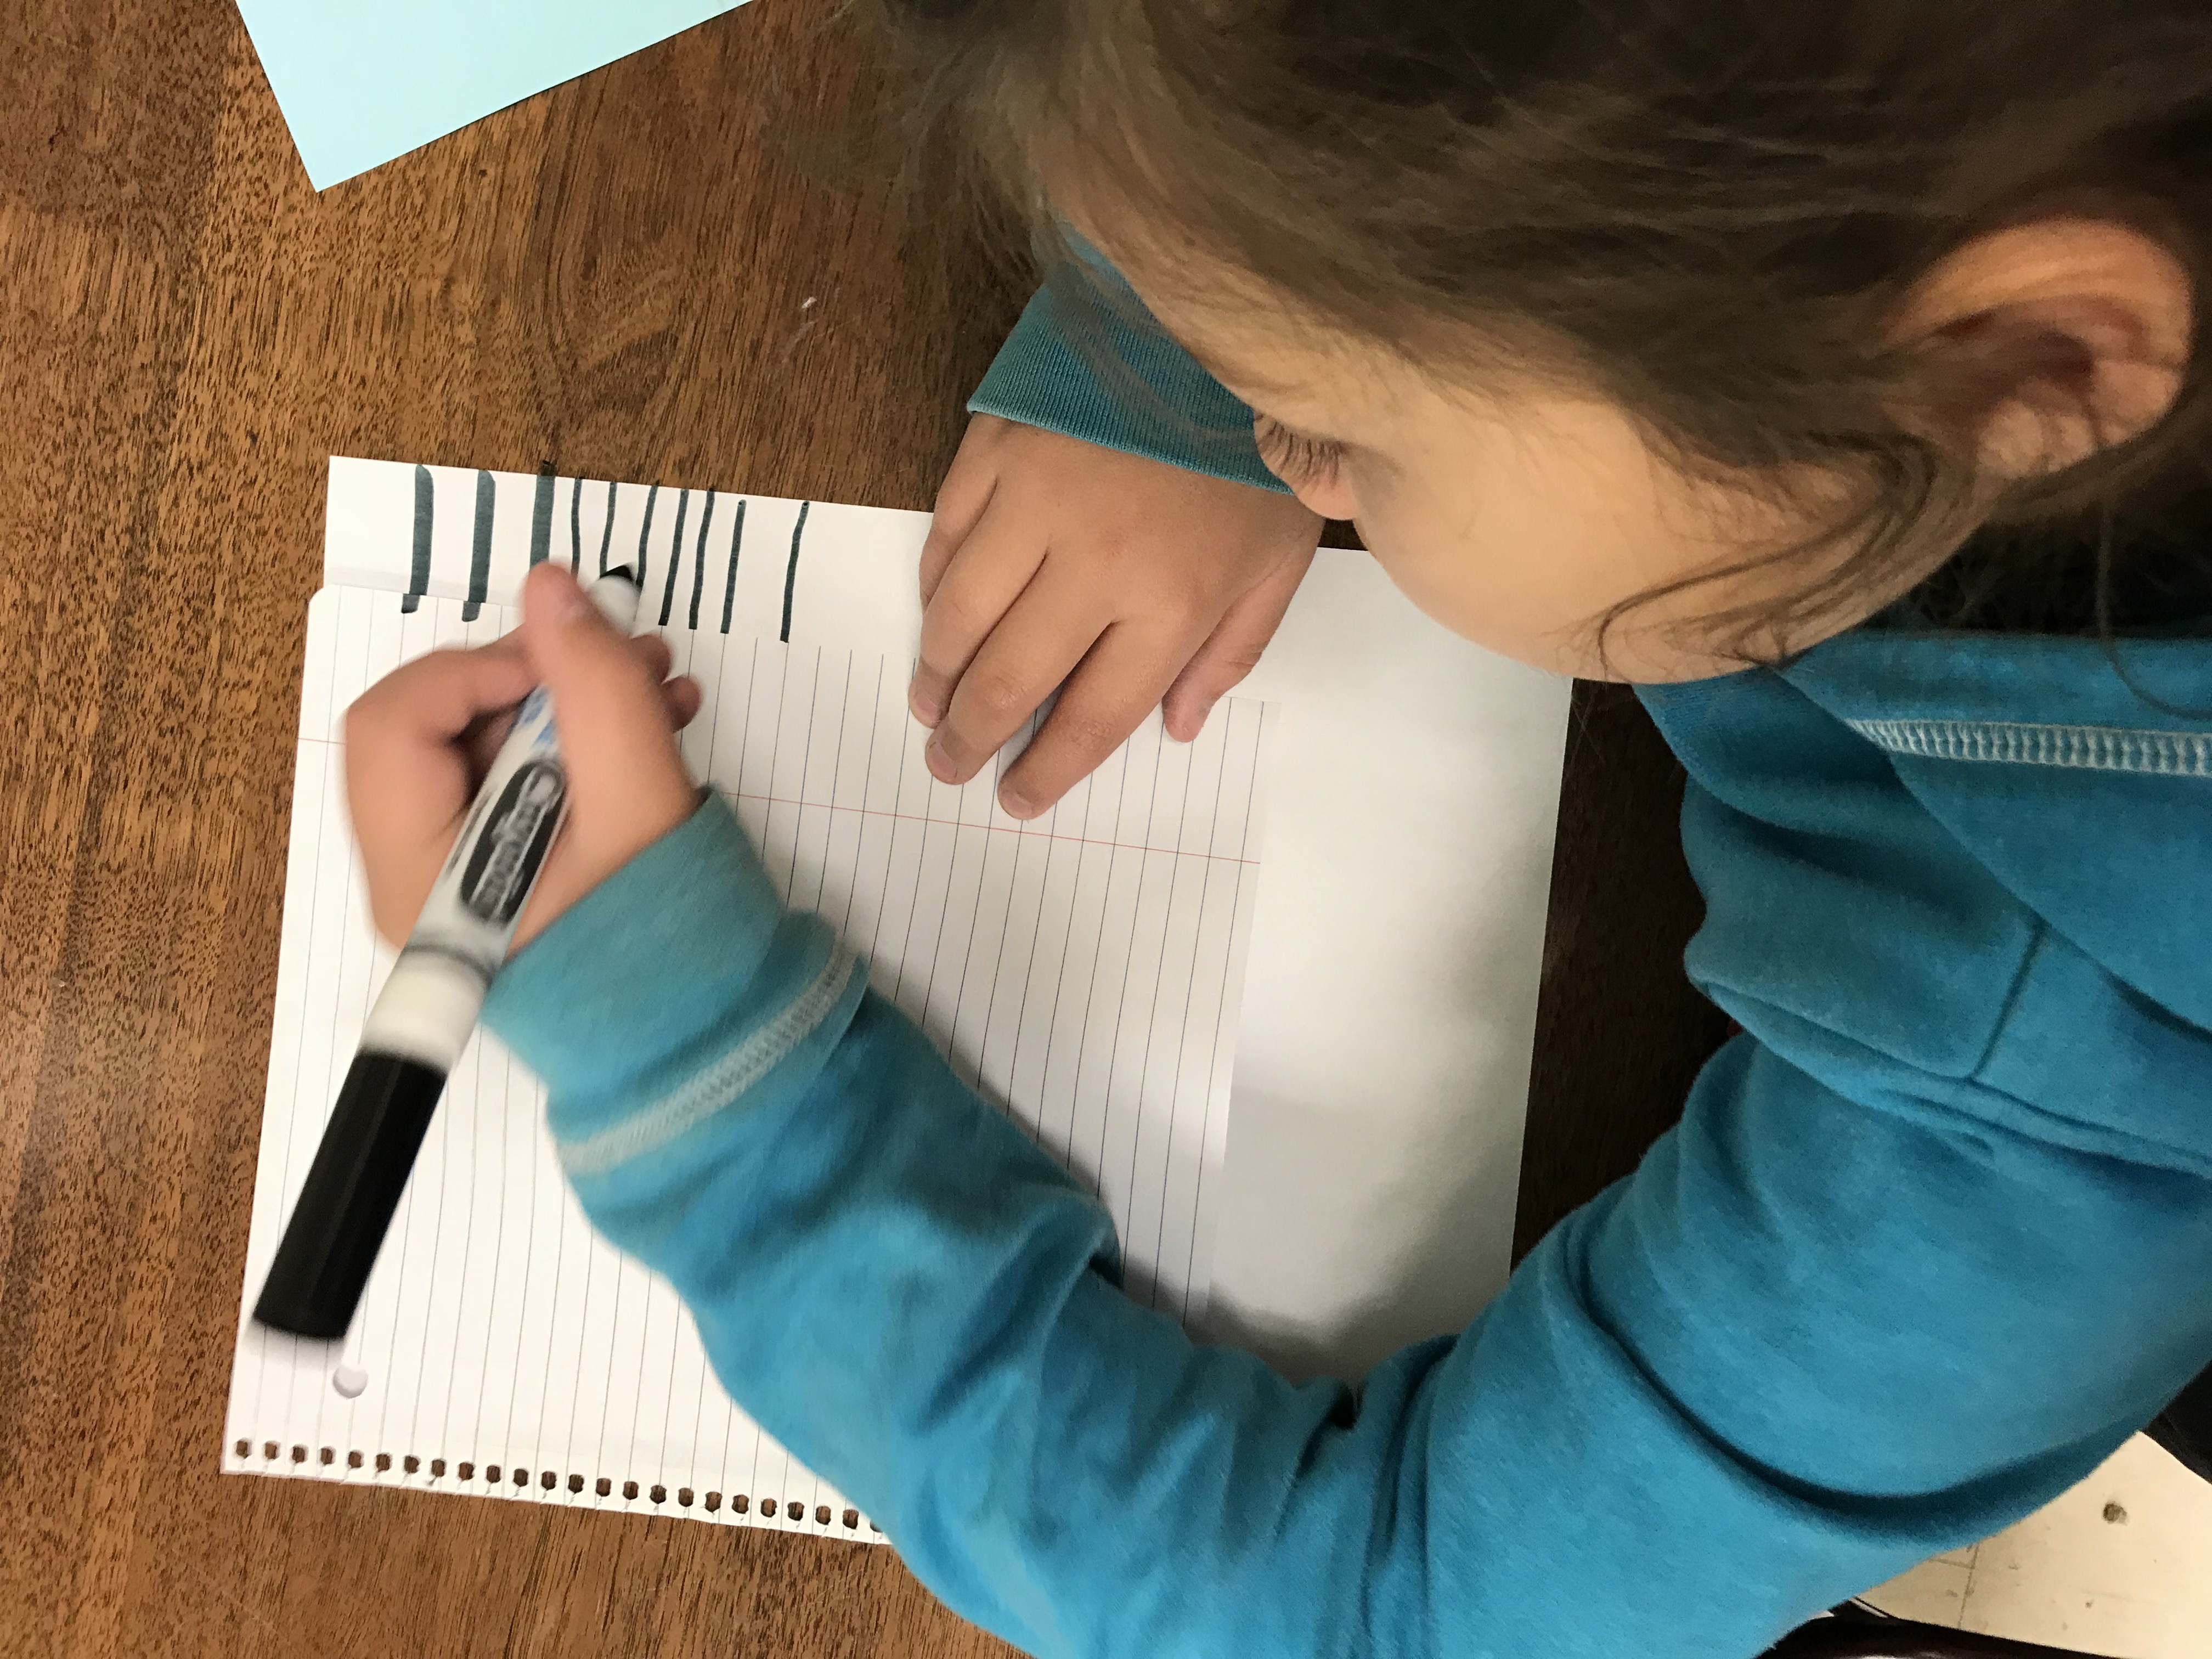 Kid tracing lines from paper